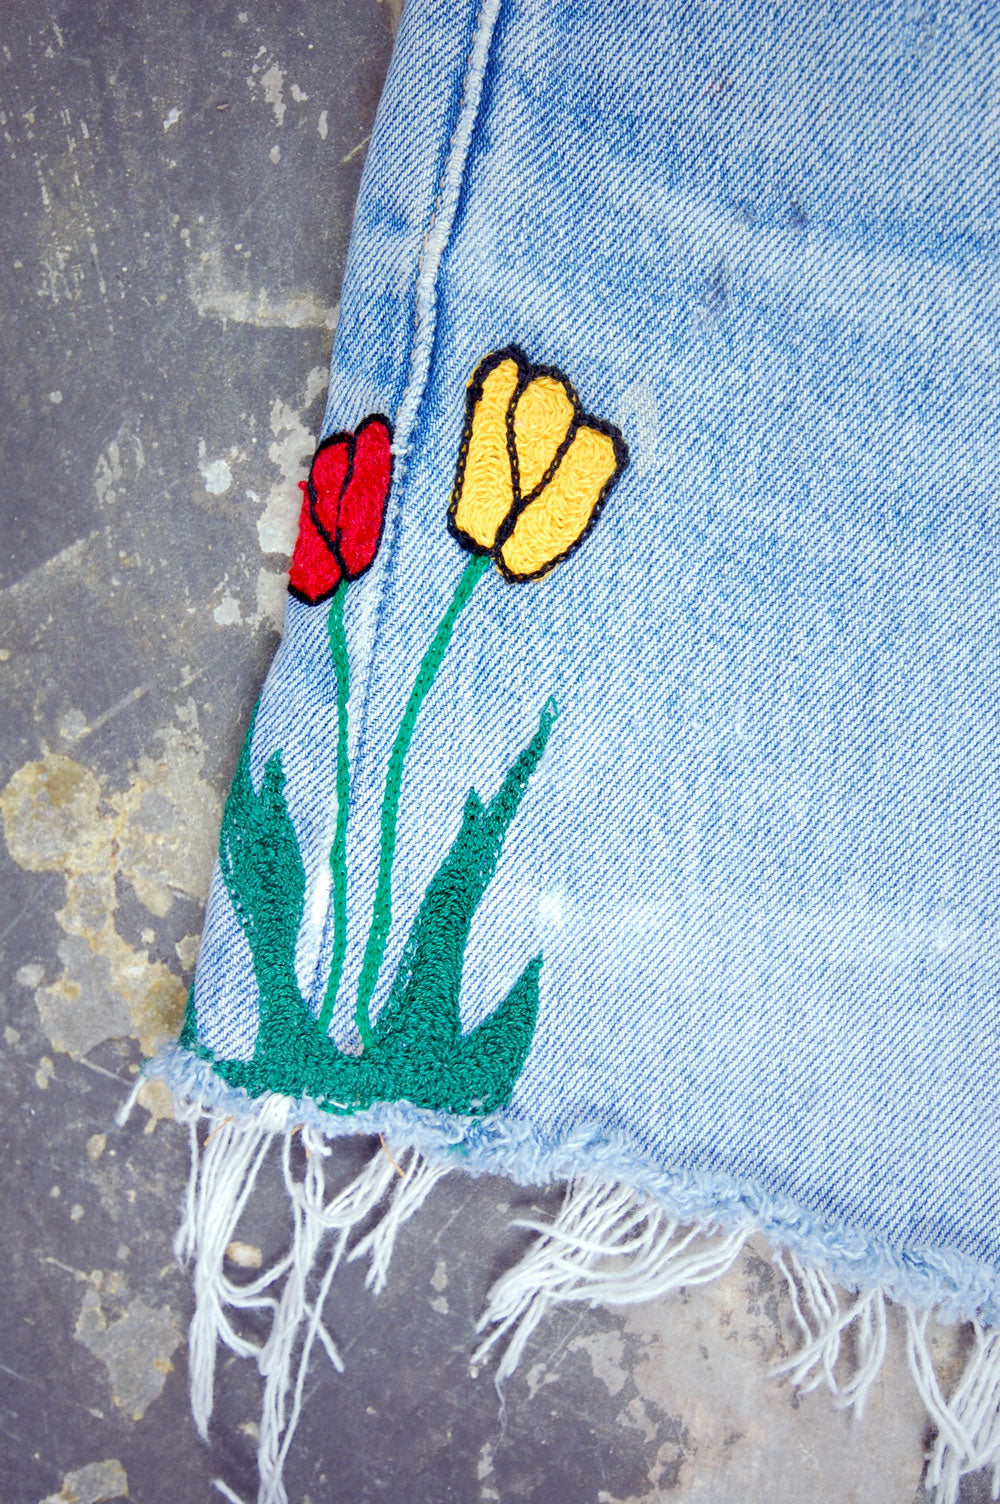 Vintage Levi's 501xx Chain-Stitched Tulips Artwork Denim Skirt